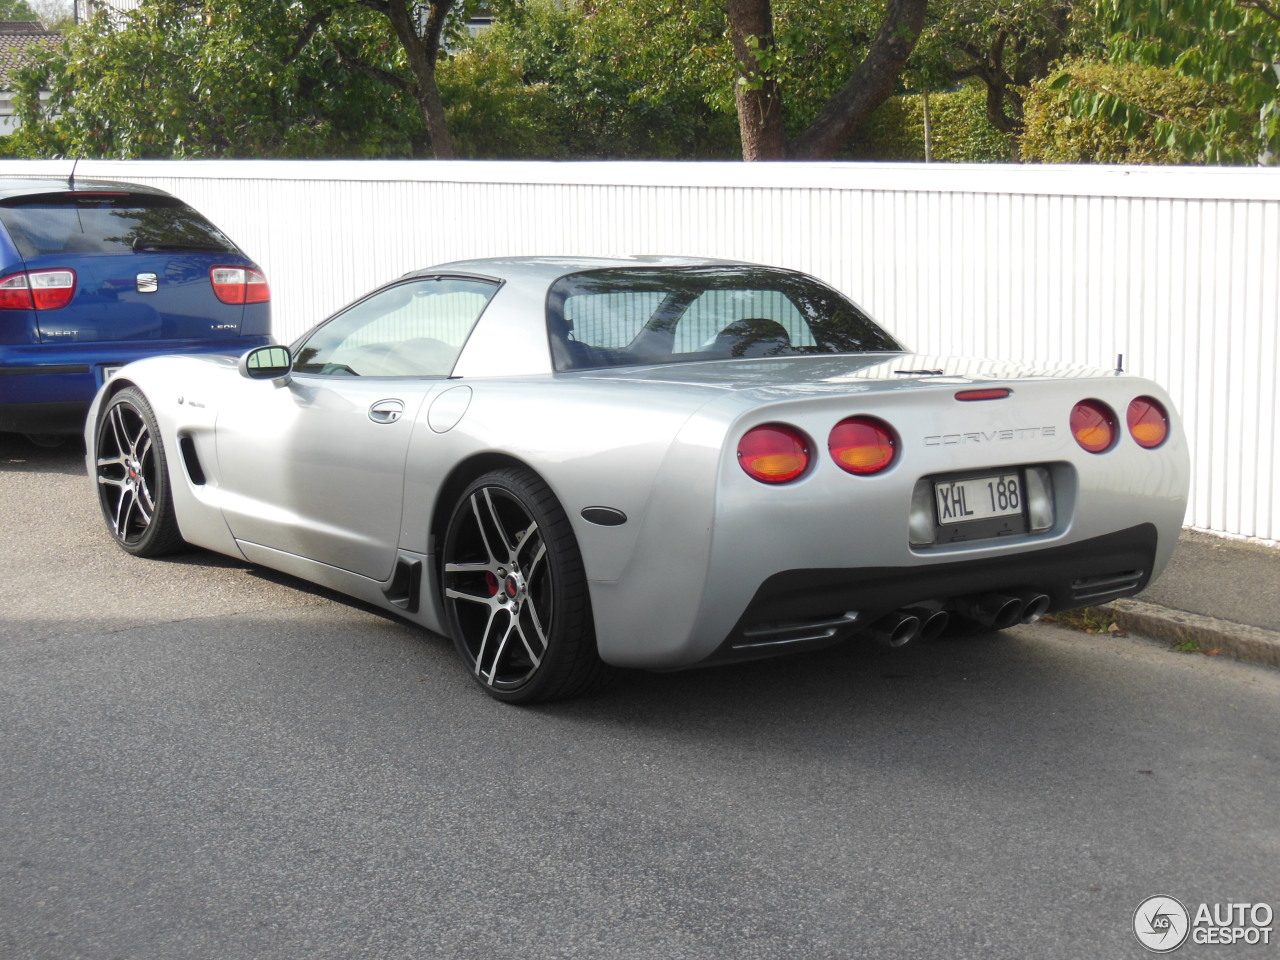 chevrolet corvette c5 z06 13 september 2013 autogespot. Black Bedroom Furniture Sets. Home Design Ideas